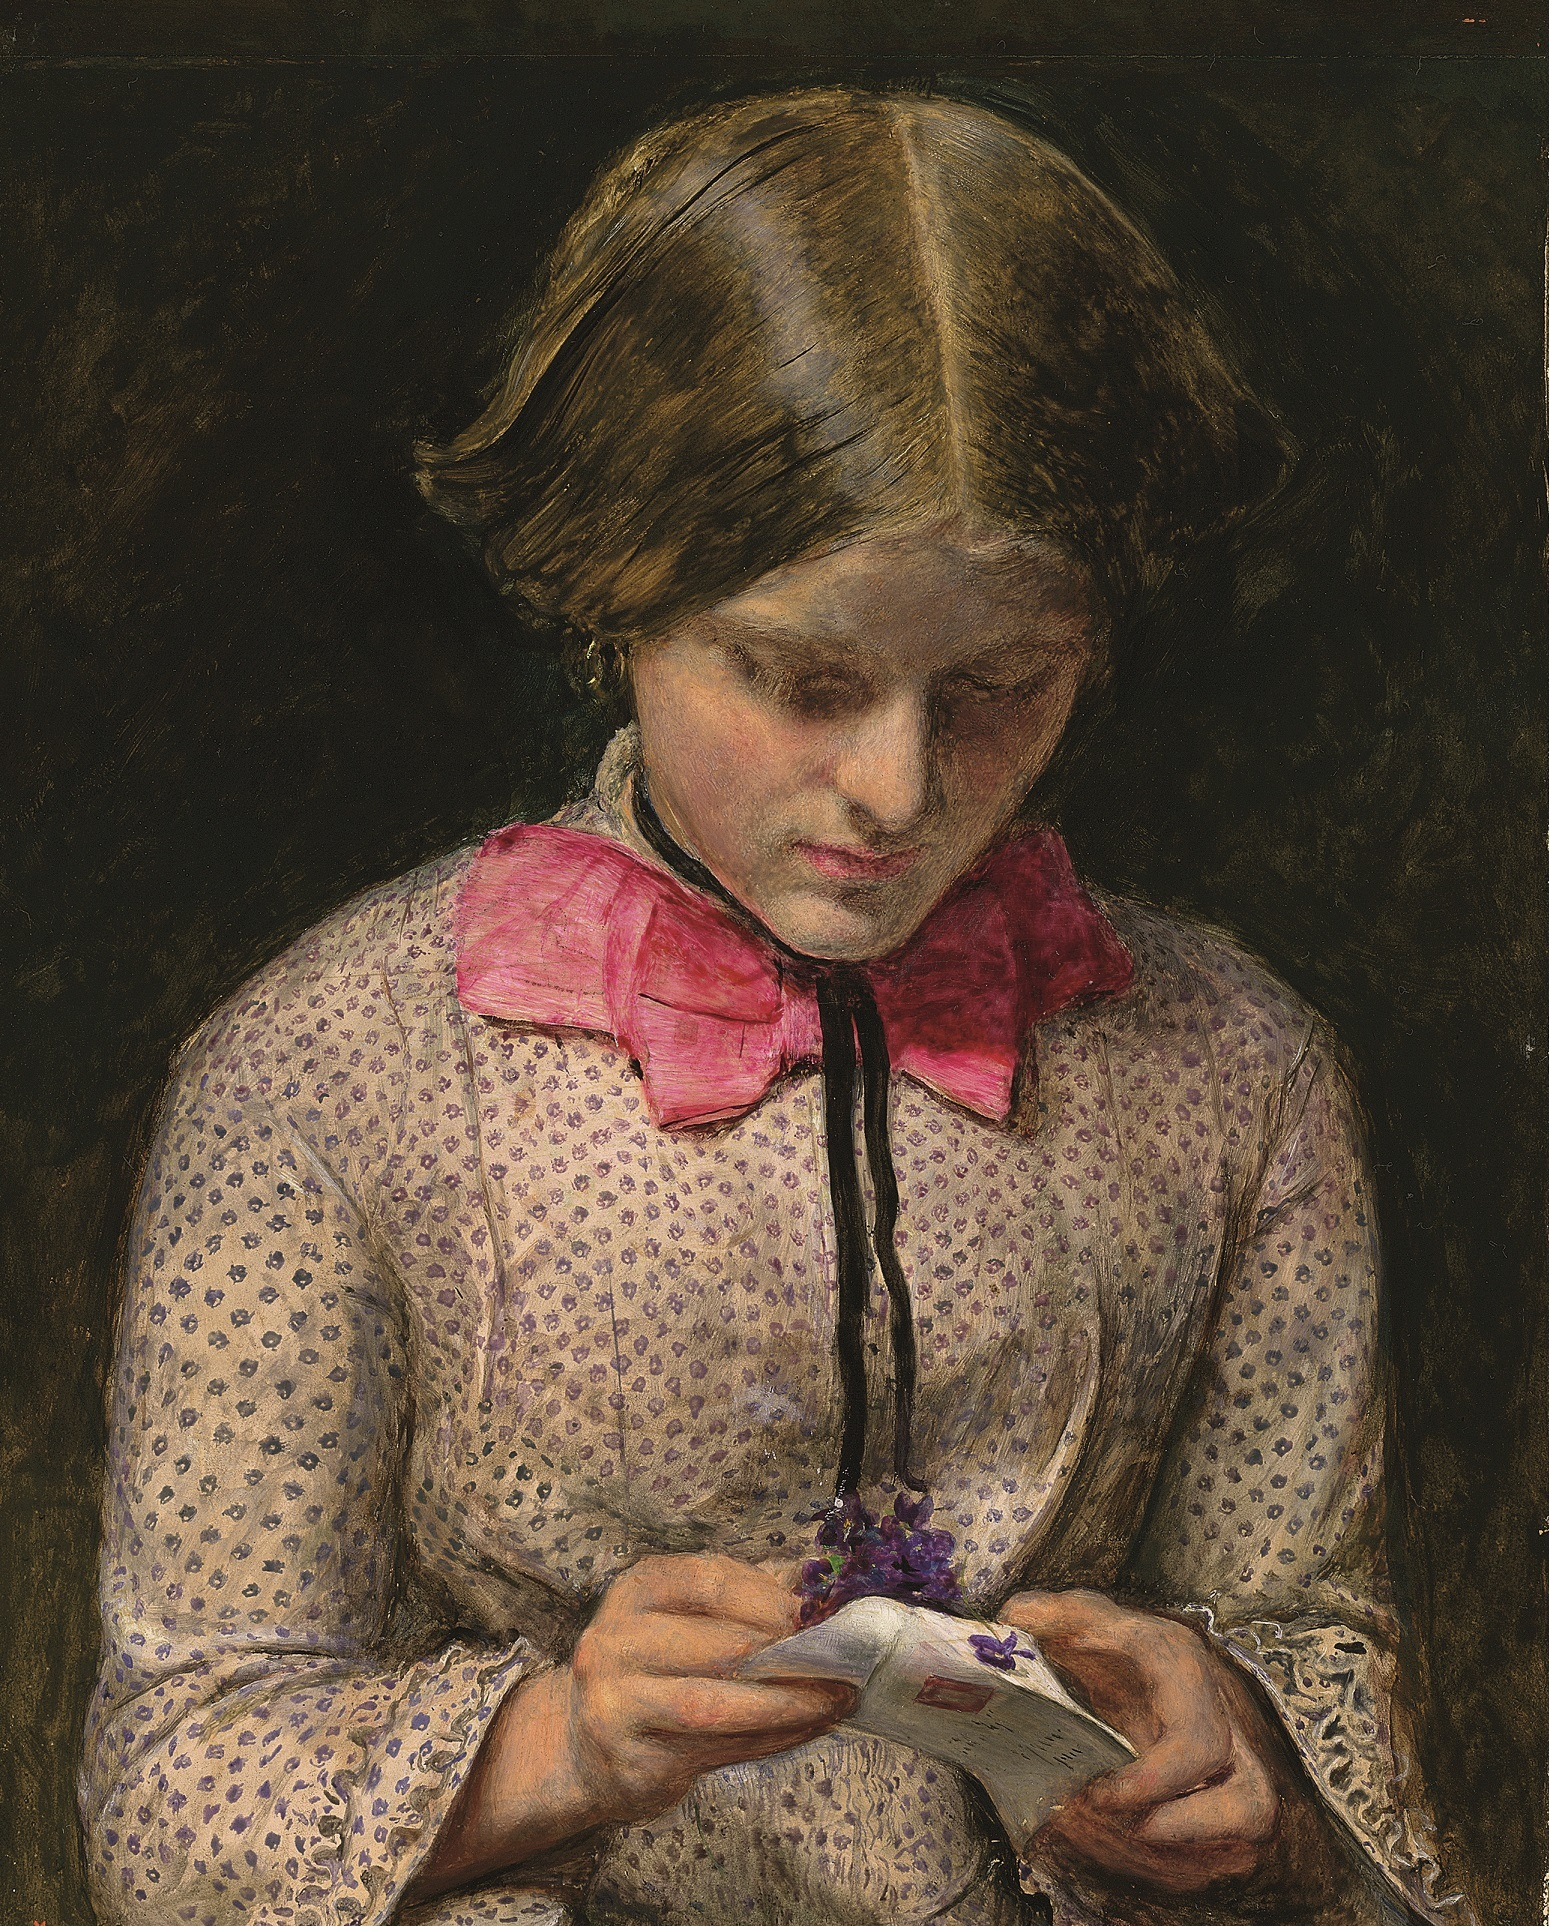 Picture by Sir John Everett Millais  entitled The Violet's Message.